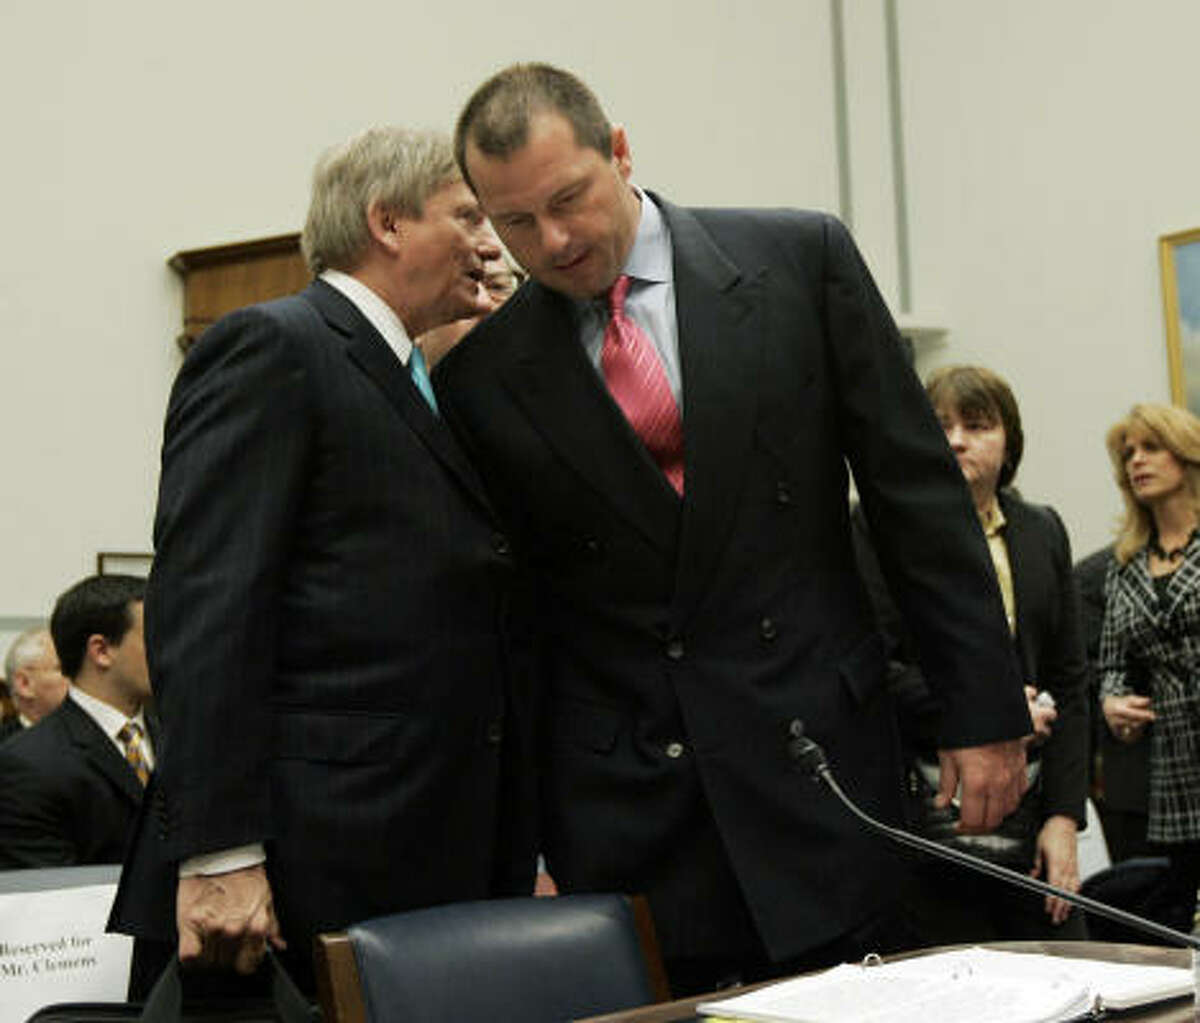 Clemens, right, listens to his attorney Rusty Hardin, left, today on Capitol Hill.